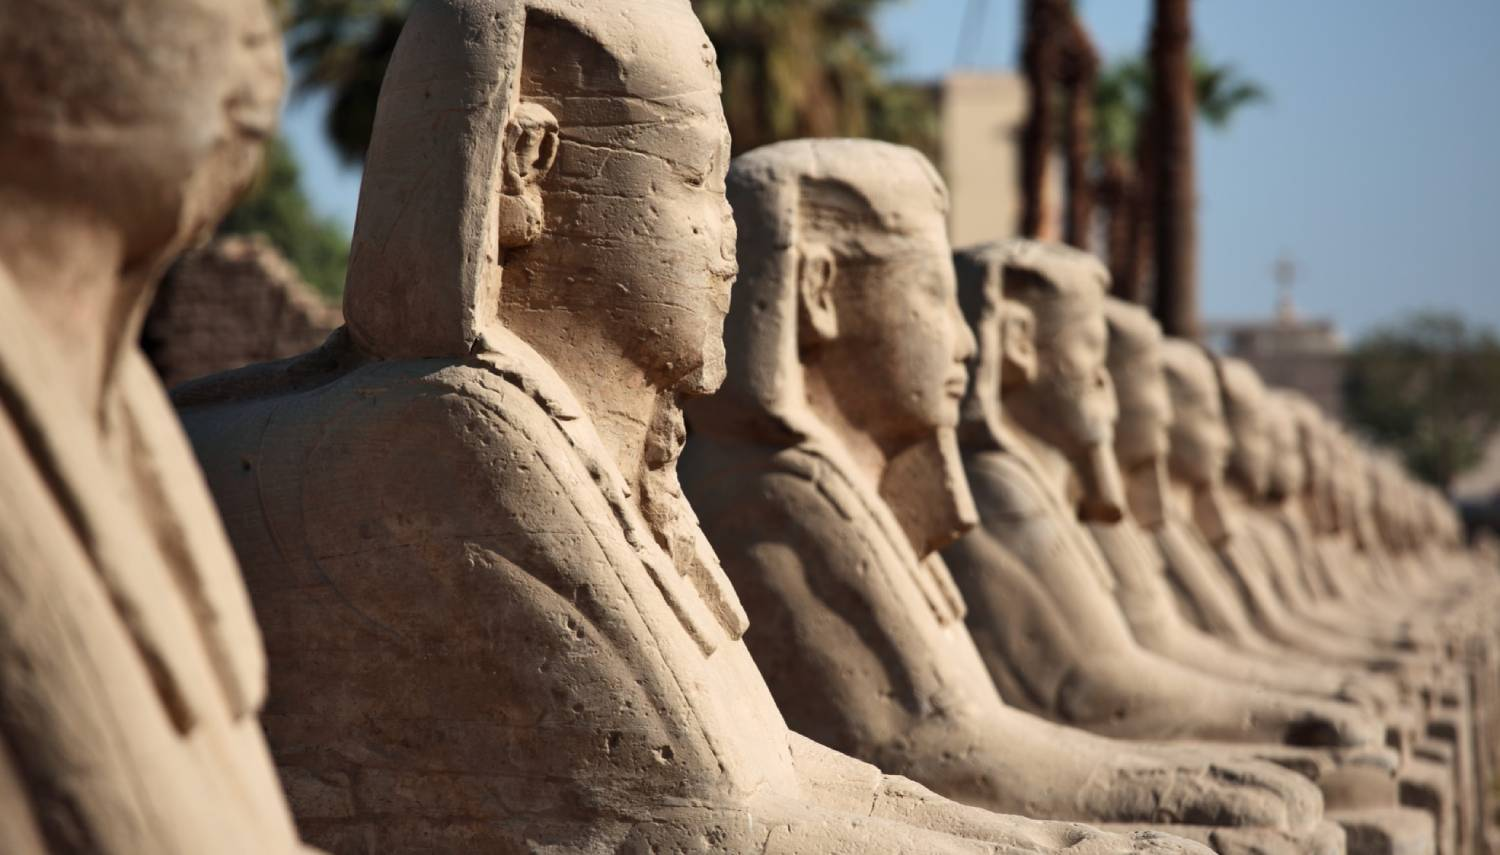 Avenue of Sphinxes - Things To Do In Luxor